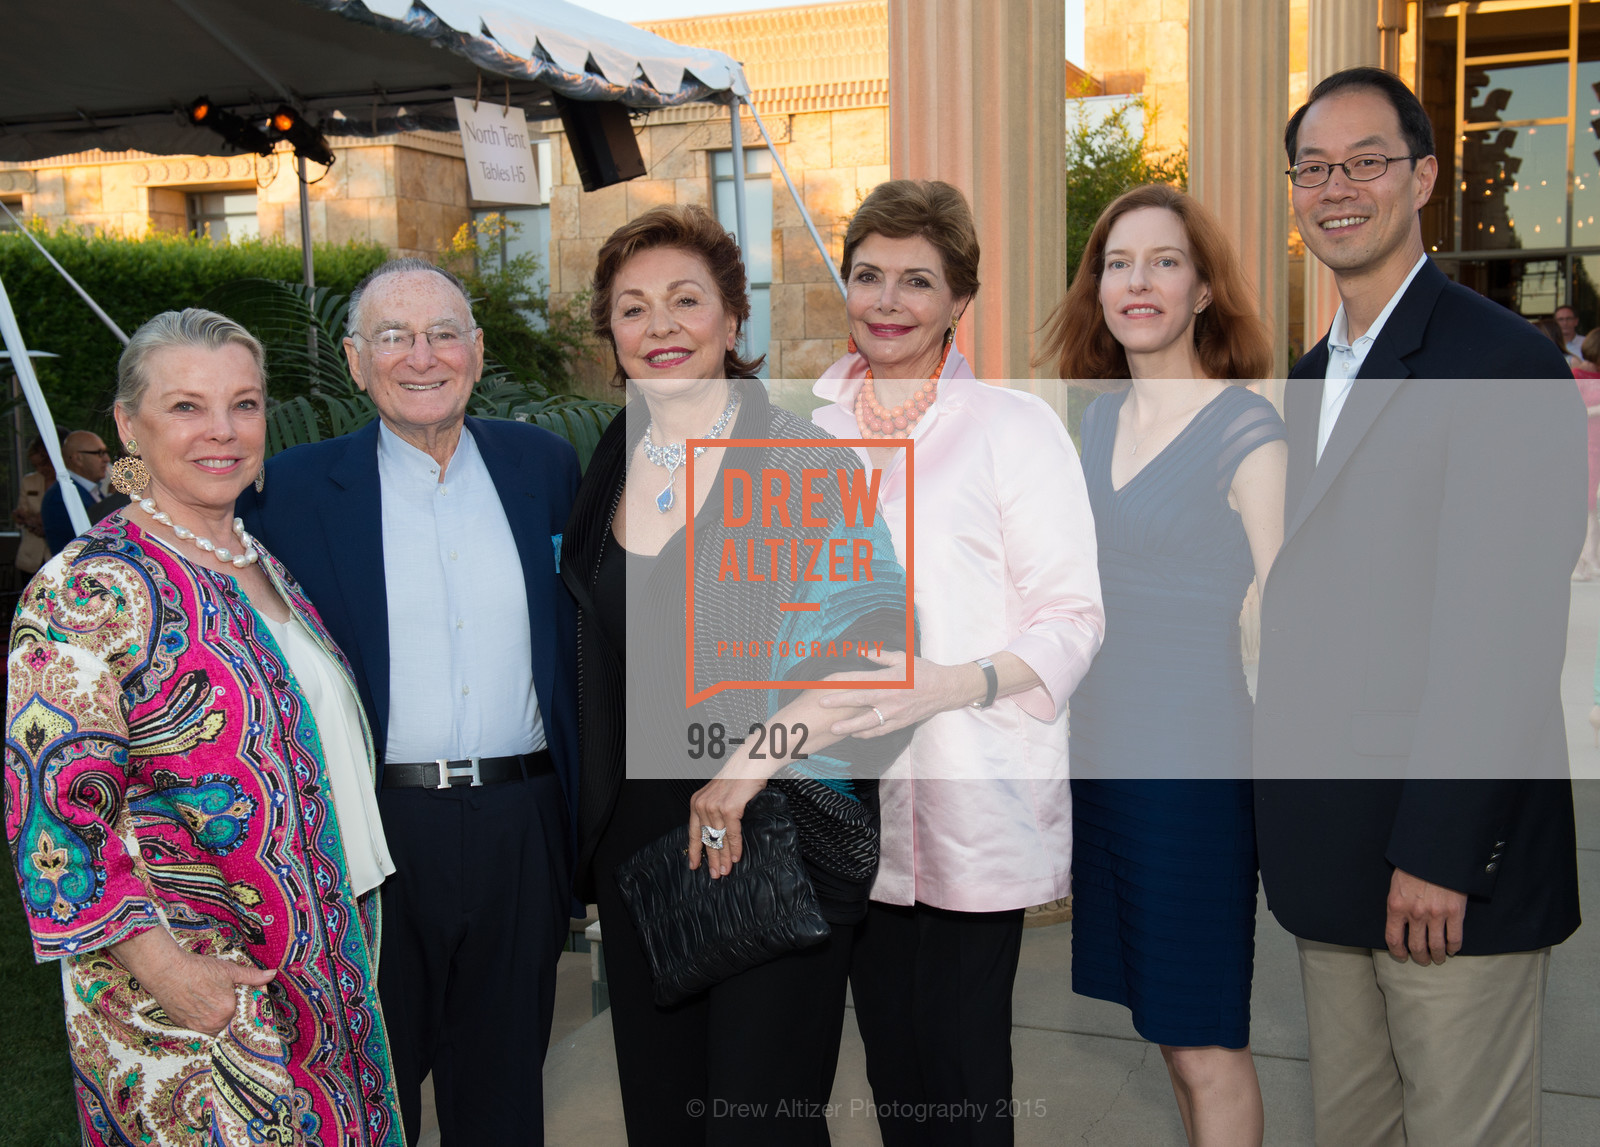 Jeanne Lawrence, Jan Shrem, Maria Manetti Shrem, Merle Mullin, Karen Chou, Dean Chou, Festival del Sole Patron Dinner at Darioush Winery, Darioush Winery. 4240 Silverado Trail, July 24th, 2015,Drew Altizer, Drew Altizer Photography, full-service agency, private events, San Francisco photographer, photographer california